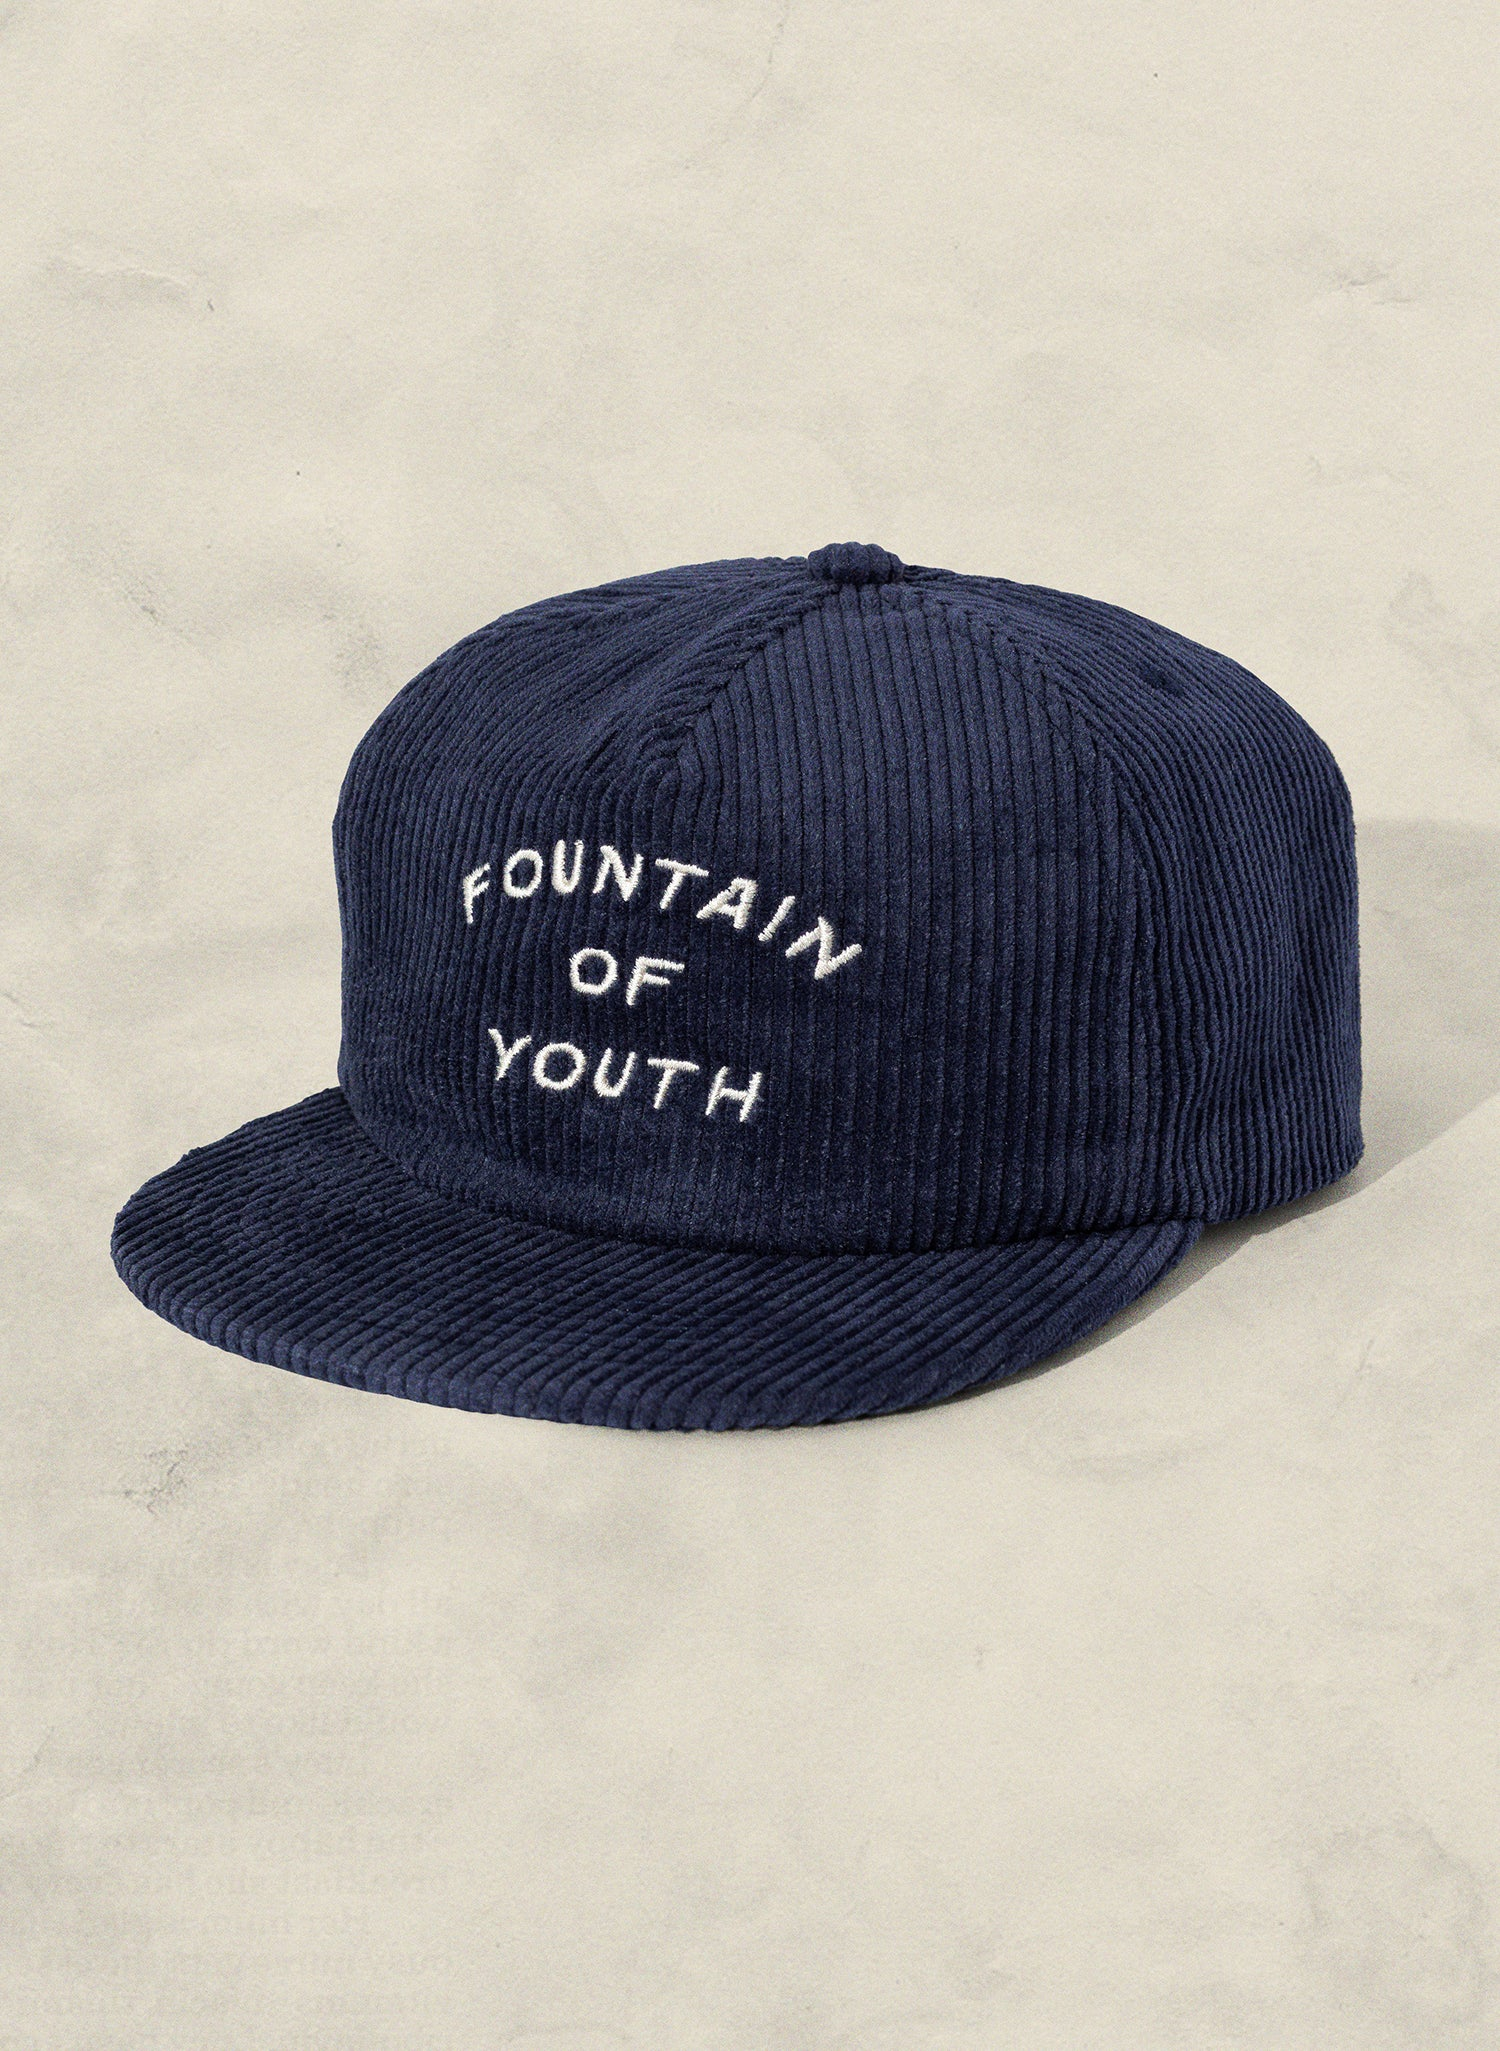 Fountain of Youth Navy Corduroy 5 Panel Unstructured Field Trip Vintage Inspired Workwear Hat by Weld MFG